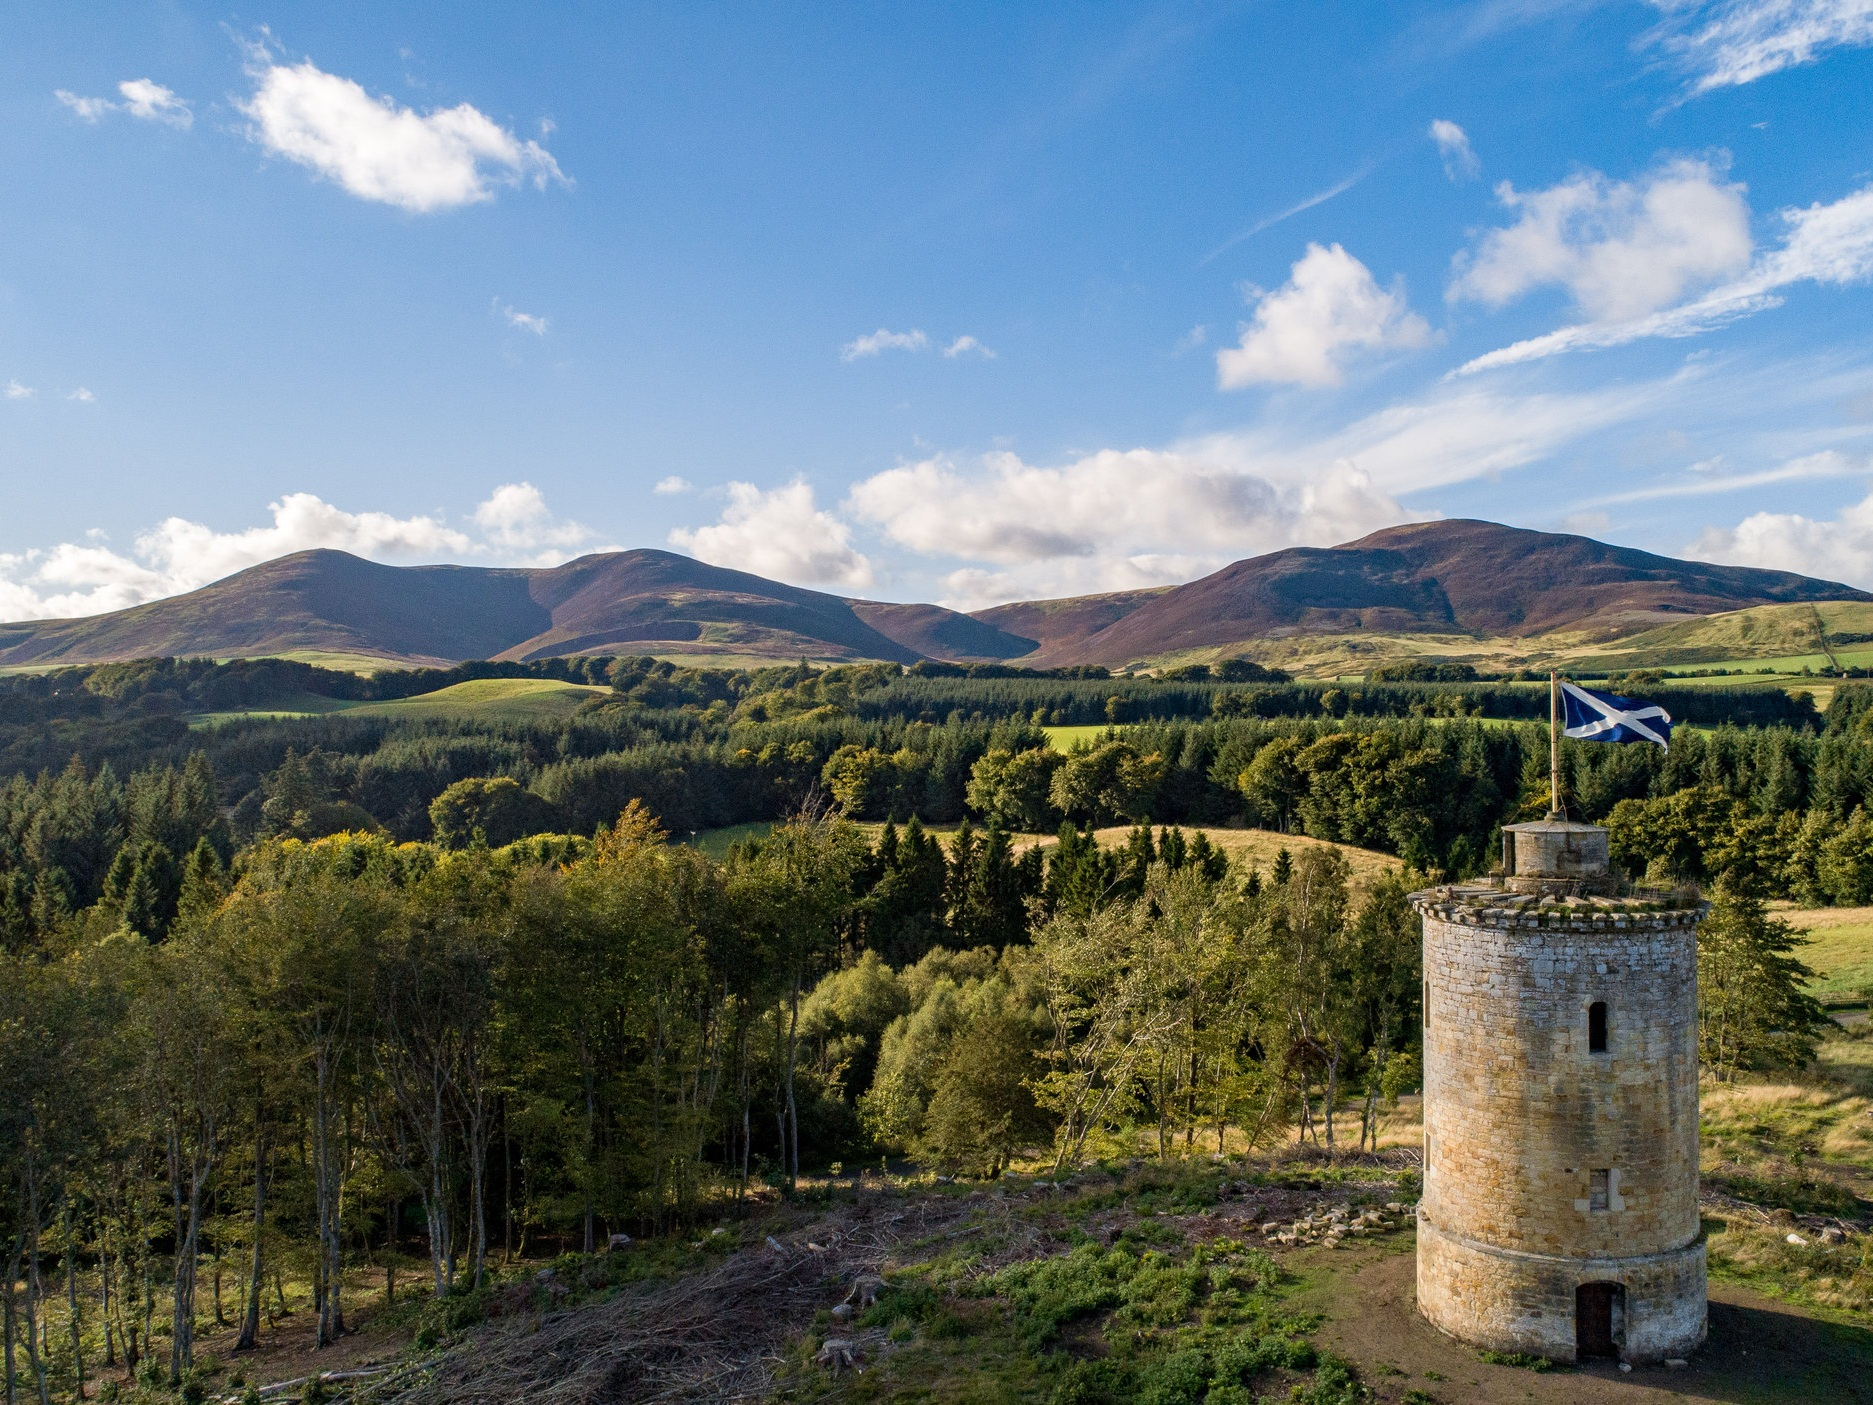 House & Landscape Tours - Our fantastic Rangers have an incredible knowledge of Penicuik Estate and the designed landscape. Our tours range from bats and fungi to architecture and landscaping.